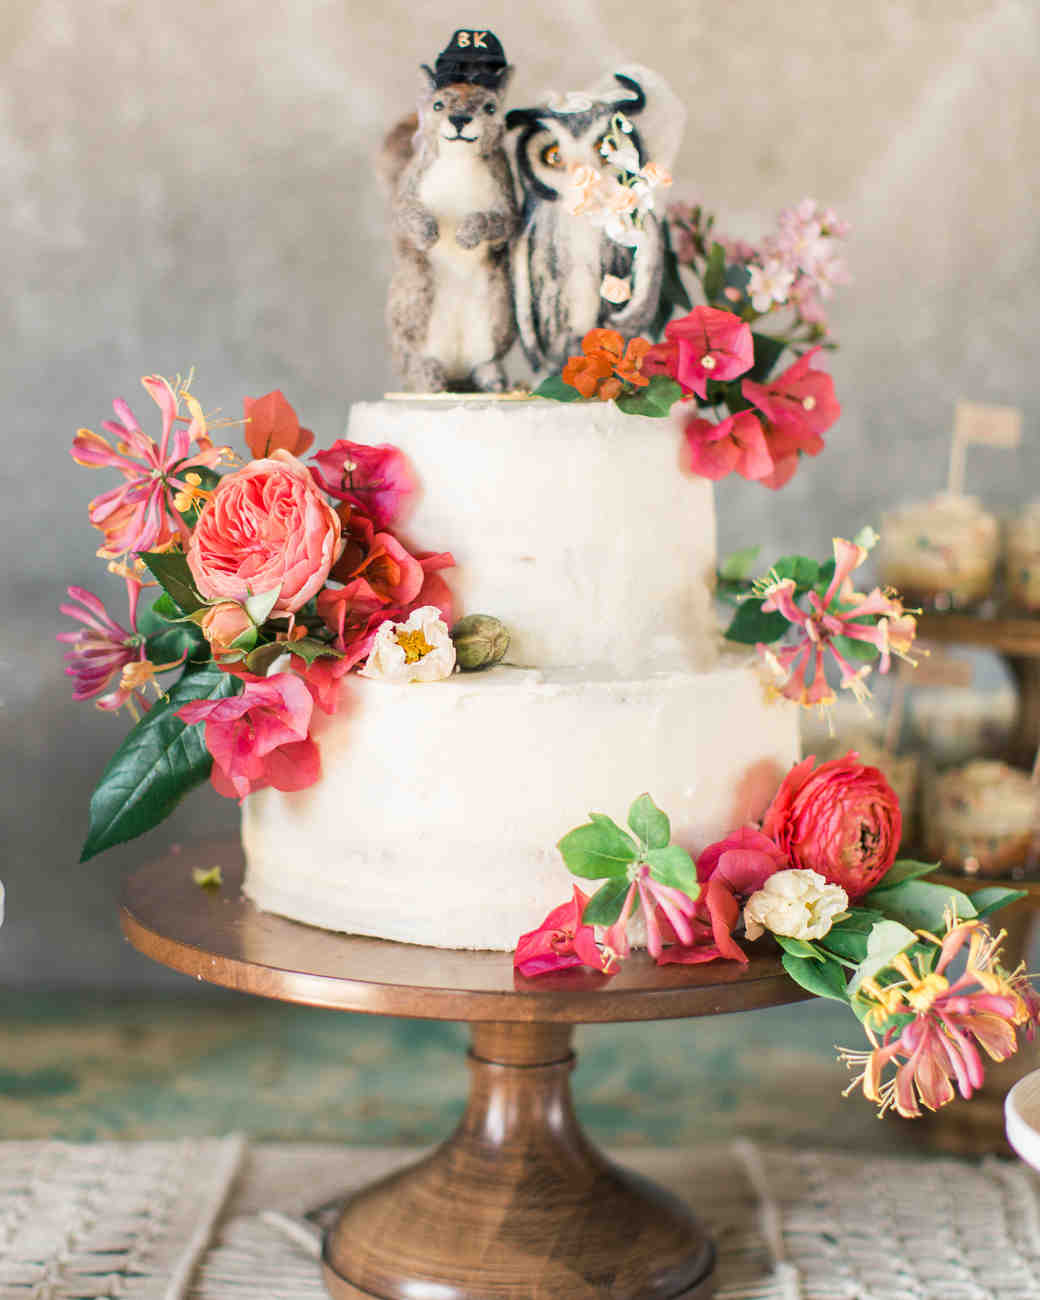 Wedding Cakes: The 25 Best Wedding Cakes